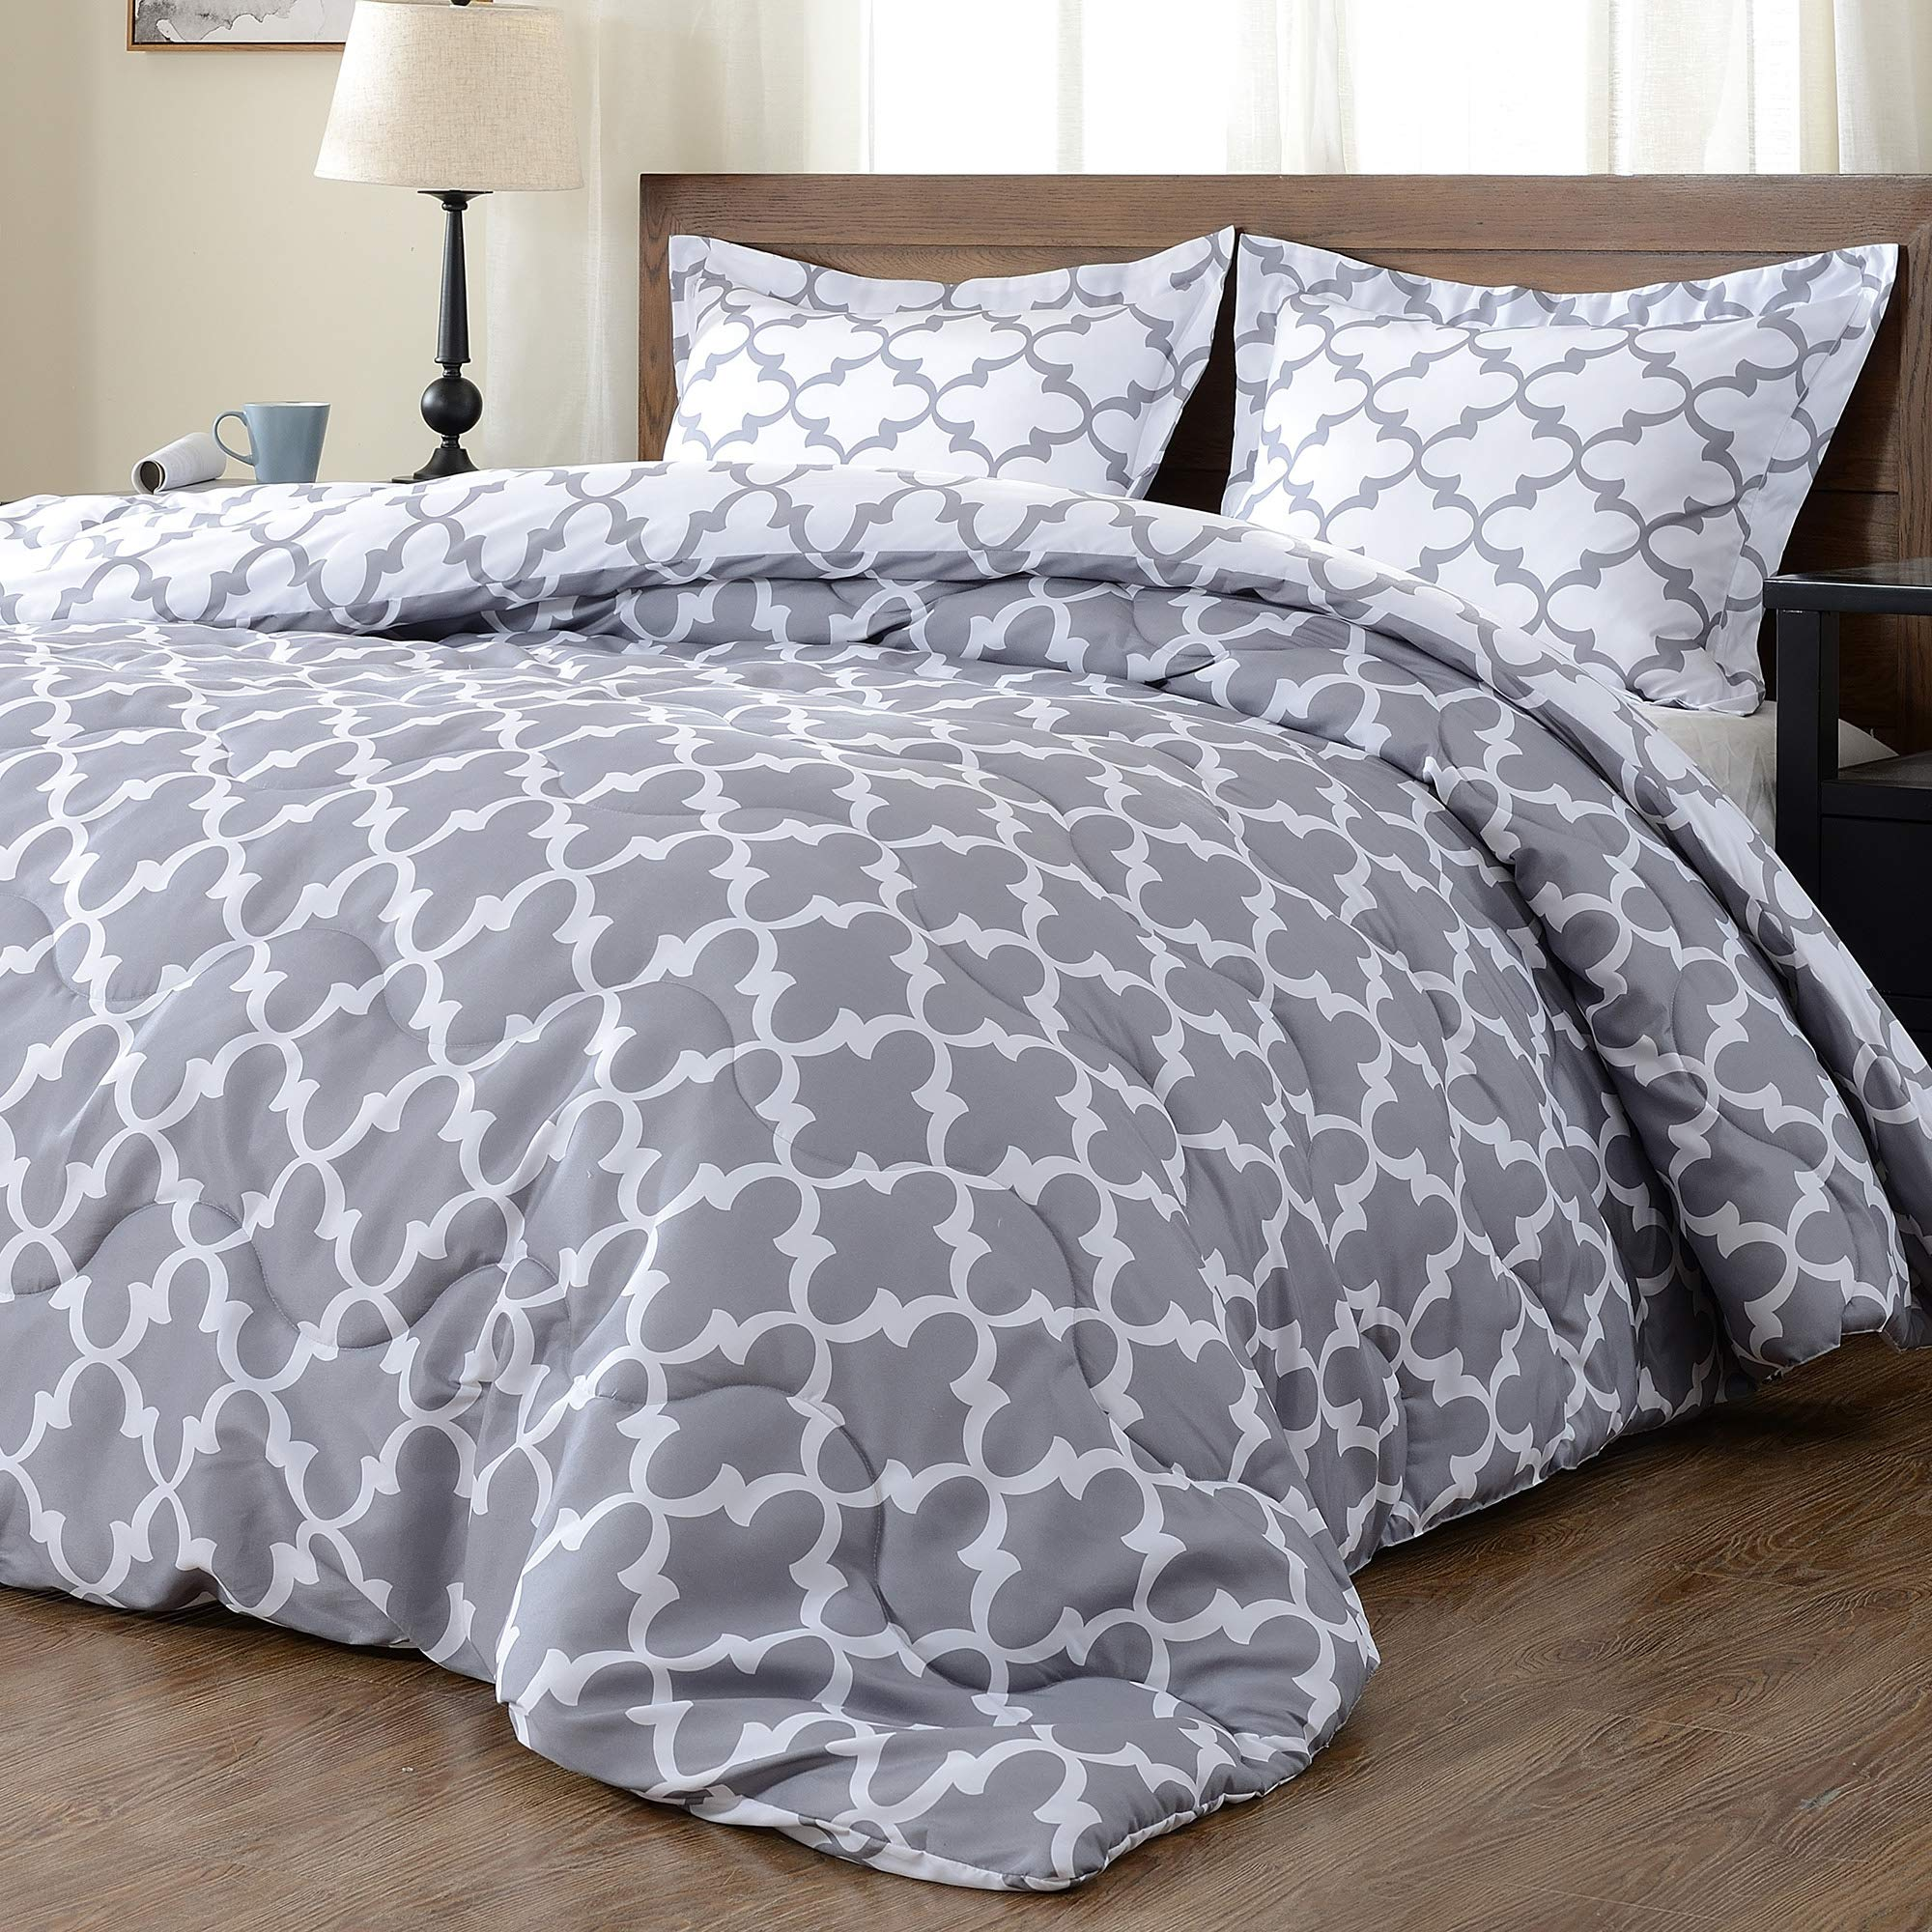 downluxe Lightweight Printed Comforter Set (King,Grey) with 2 Pillow Shams - 3-Piece Set - Down Alternative Reversible Comforter